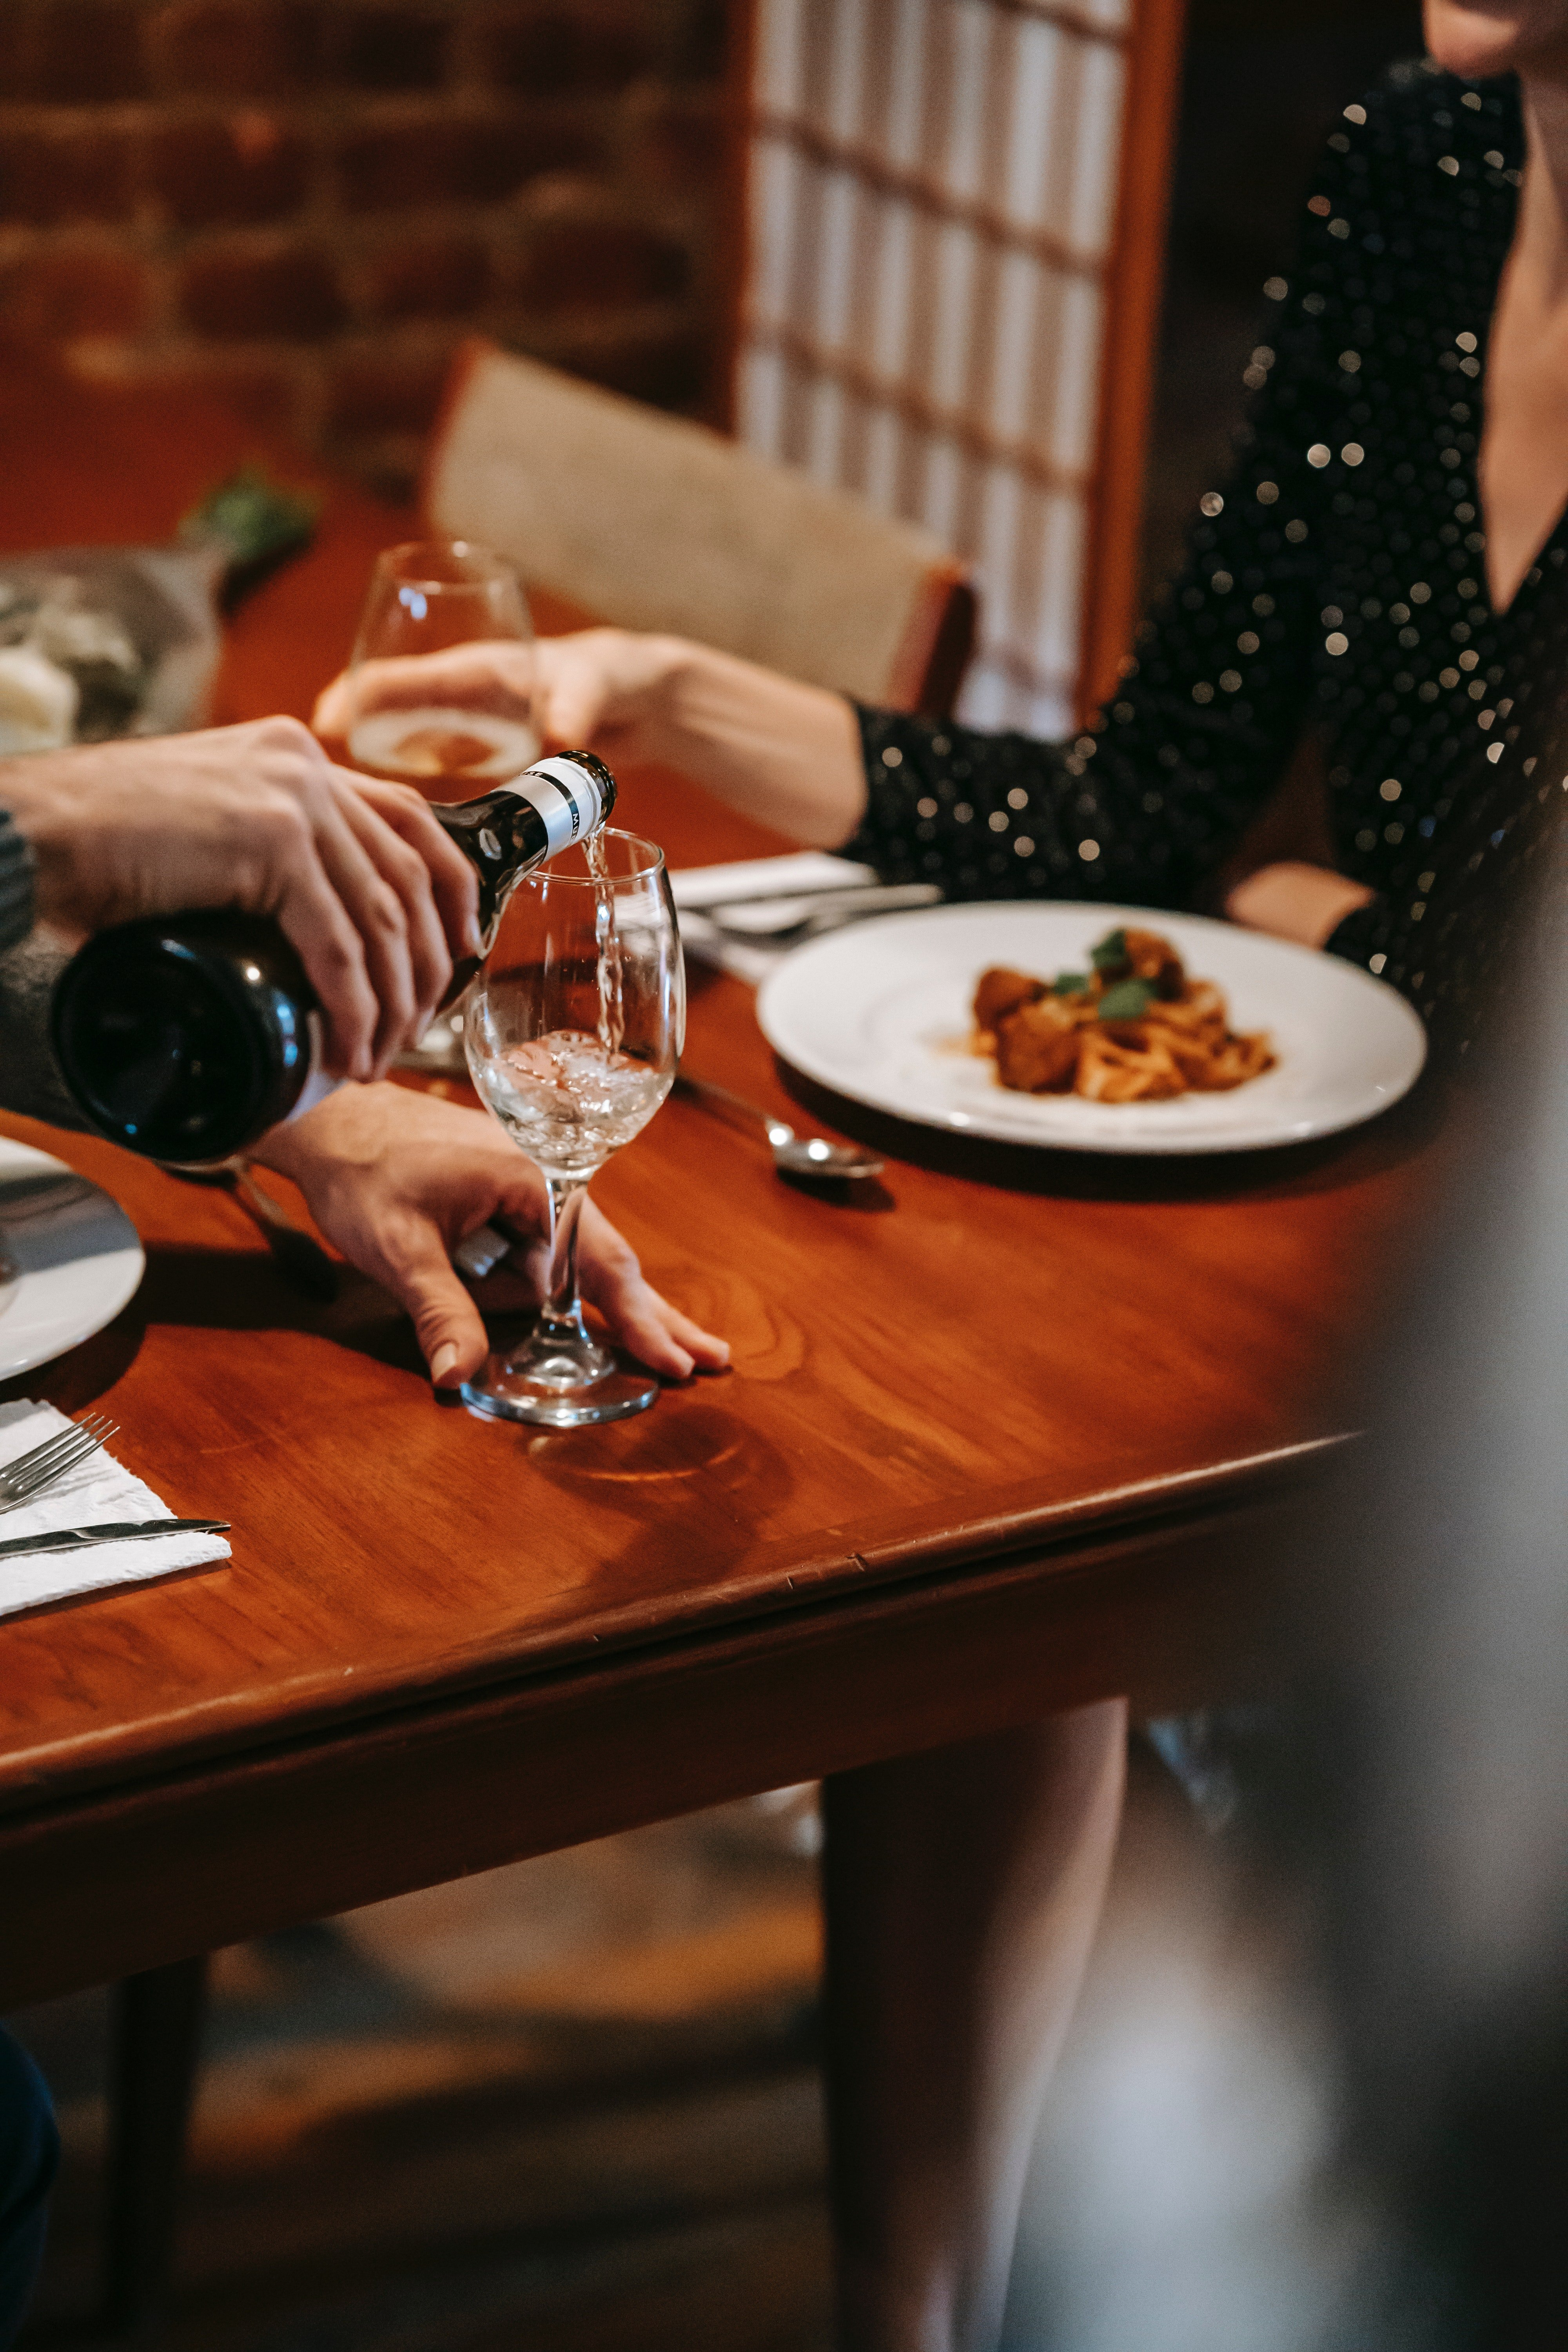 I have been to Vanessa's house and even had a couple of meals with her | Source: Pexels